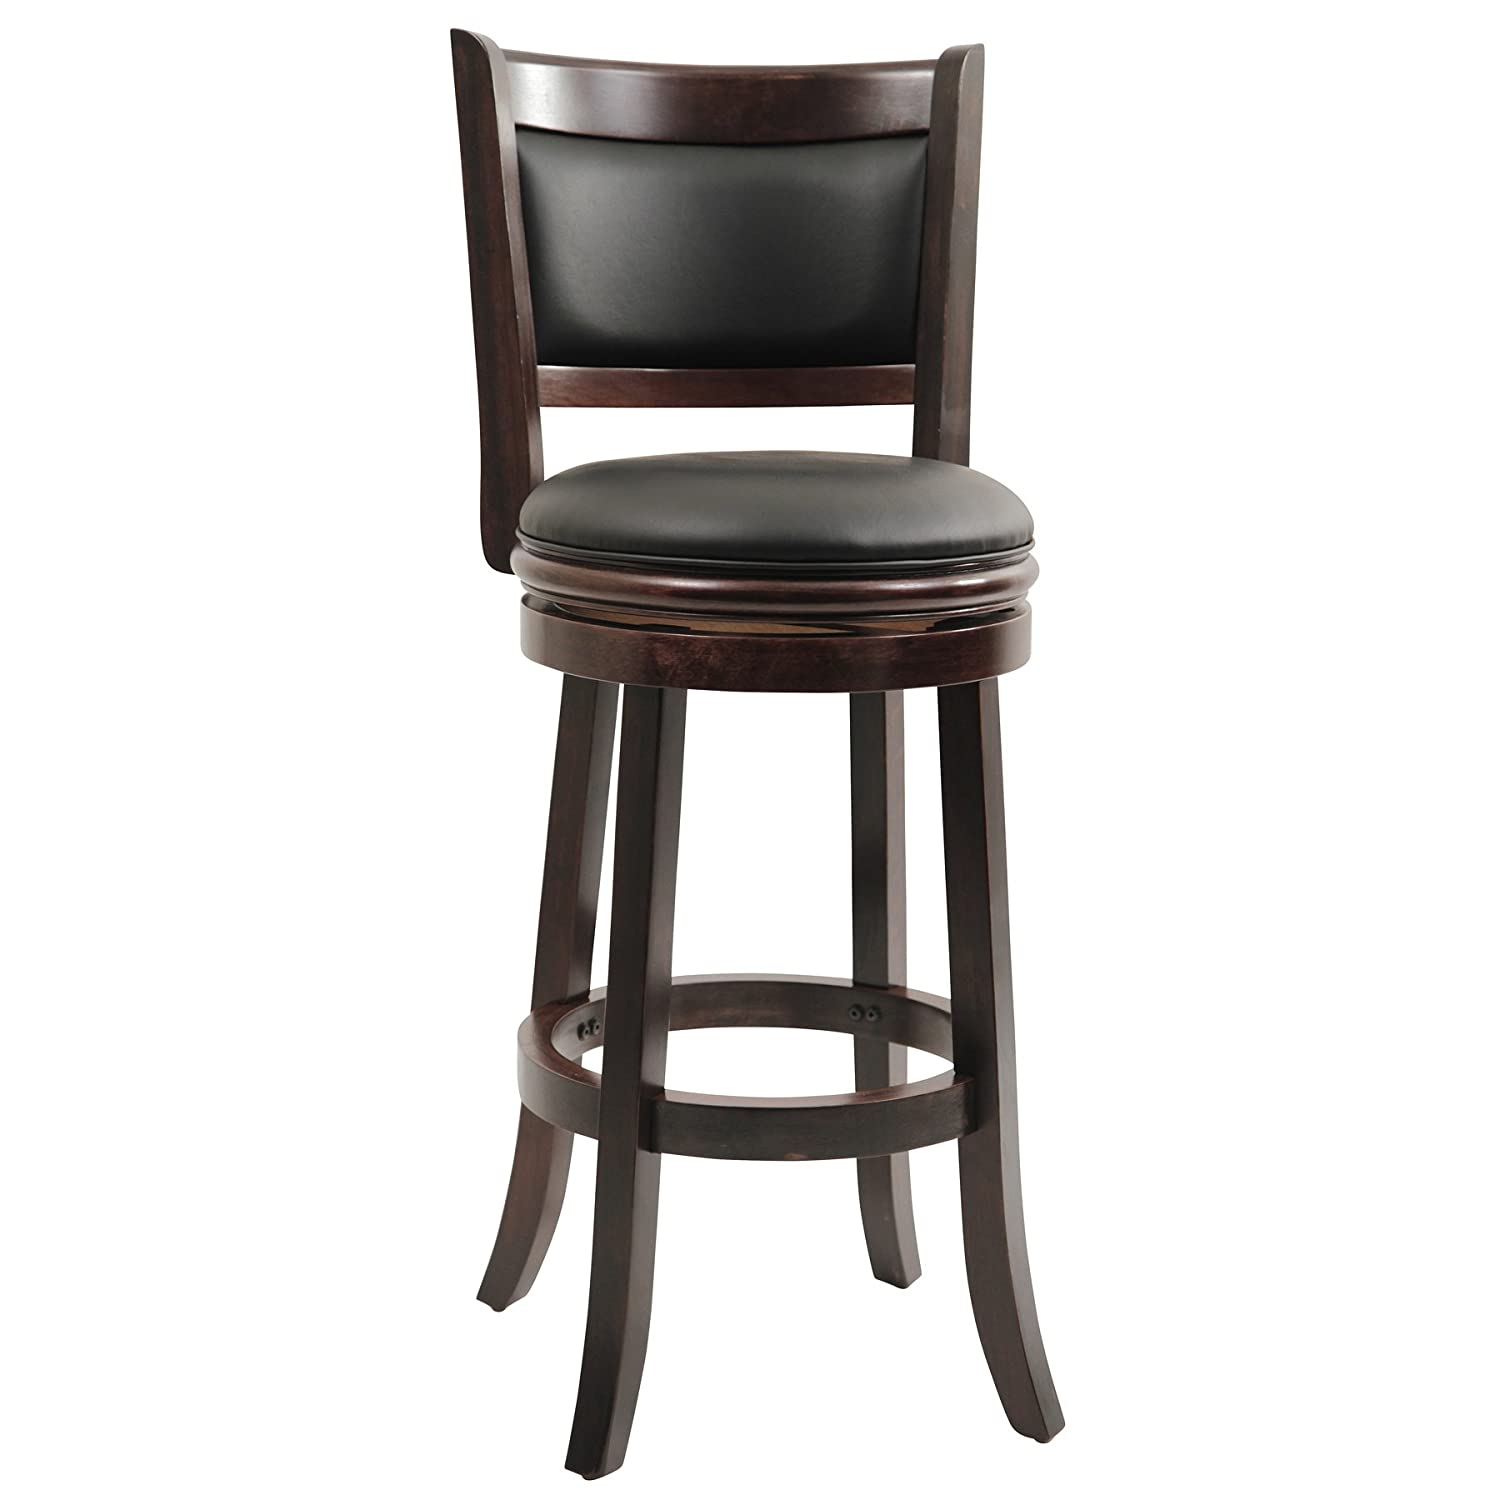 Amazon.com: Boraam 48829 Augusta Bar Height Swivel Stool, 29-Inch ...